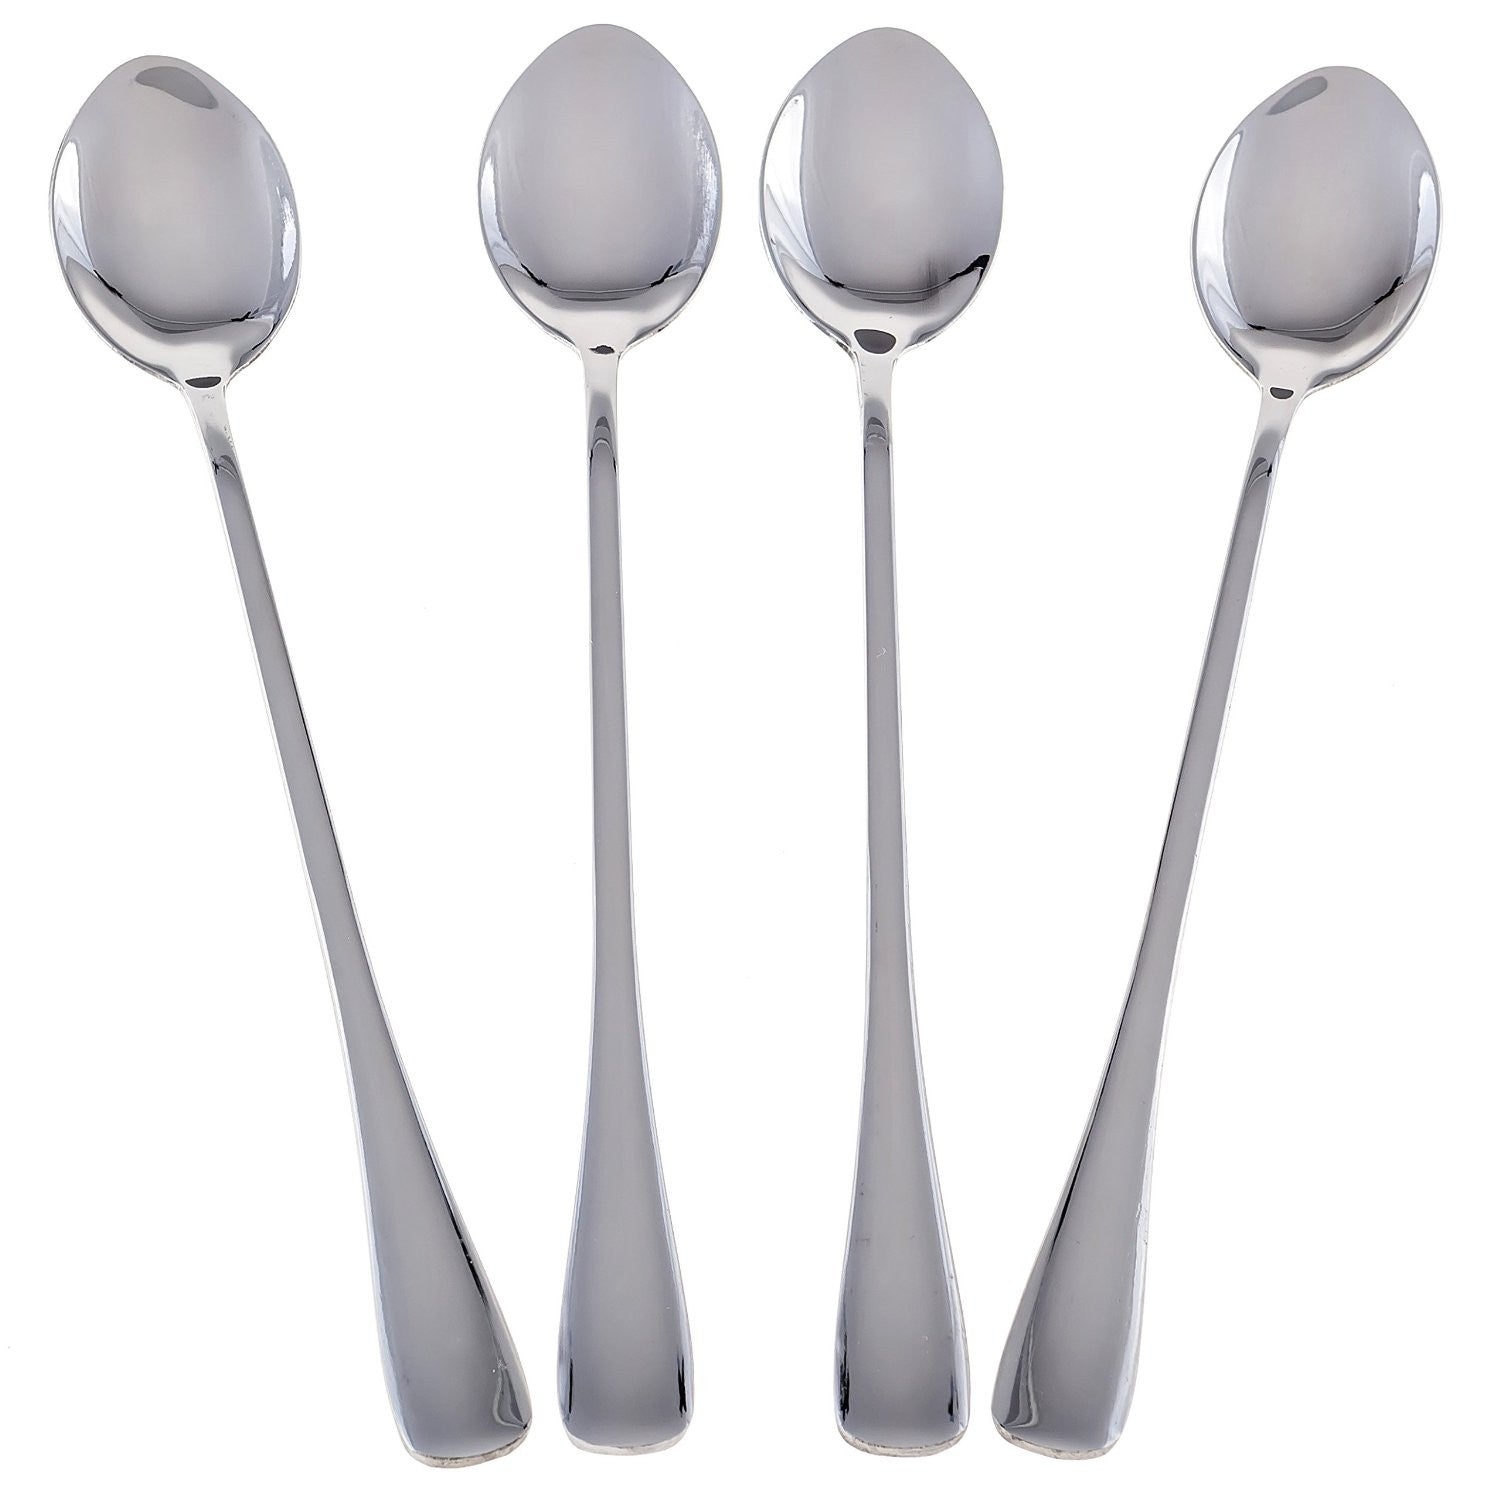 Seikei Bistro Ice Cream Spoons Tea, Coffee, or Dessert Long Handle Stainless Steel 4-spoon Set - The Japan Shop